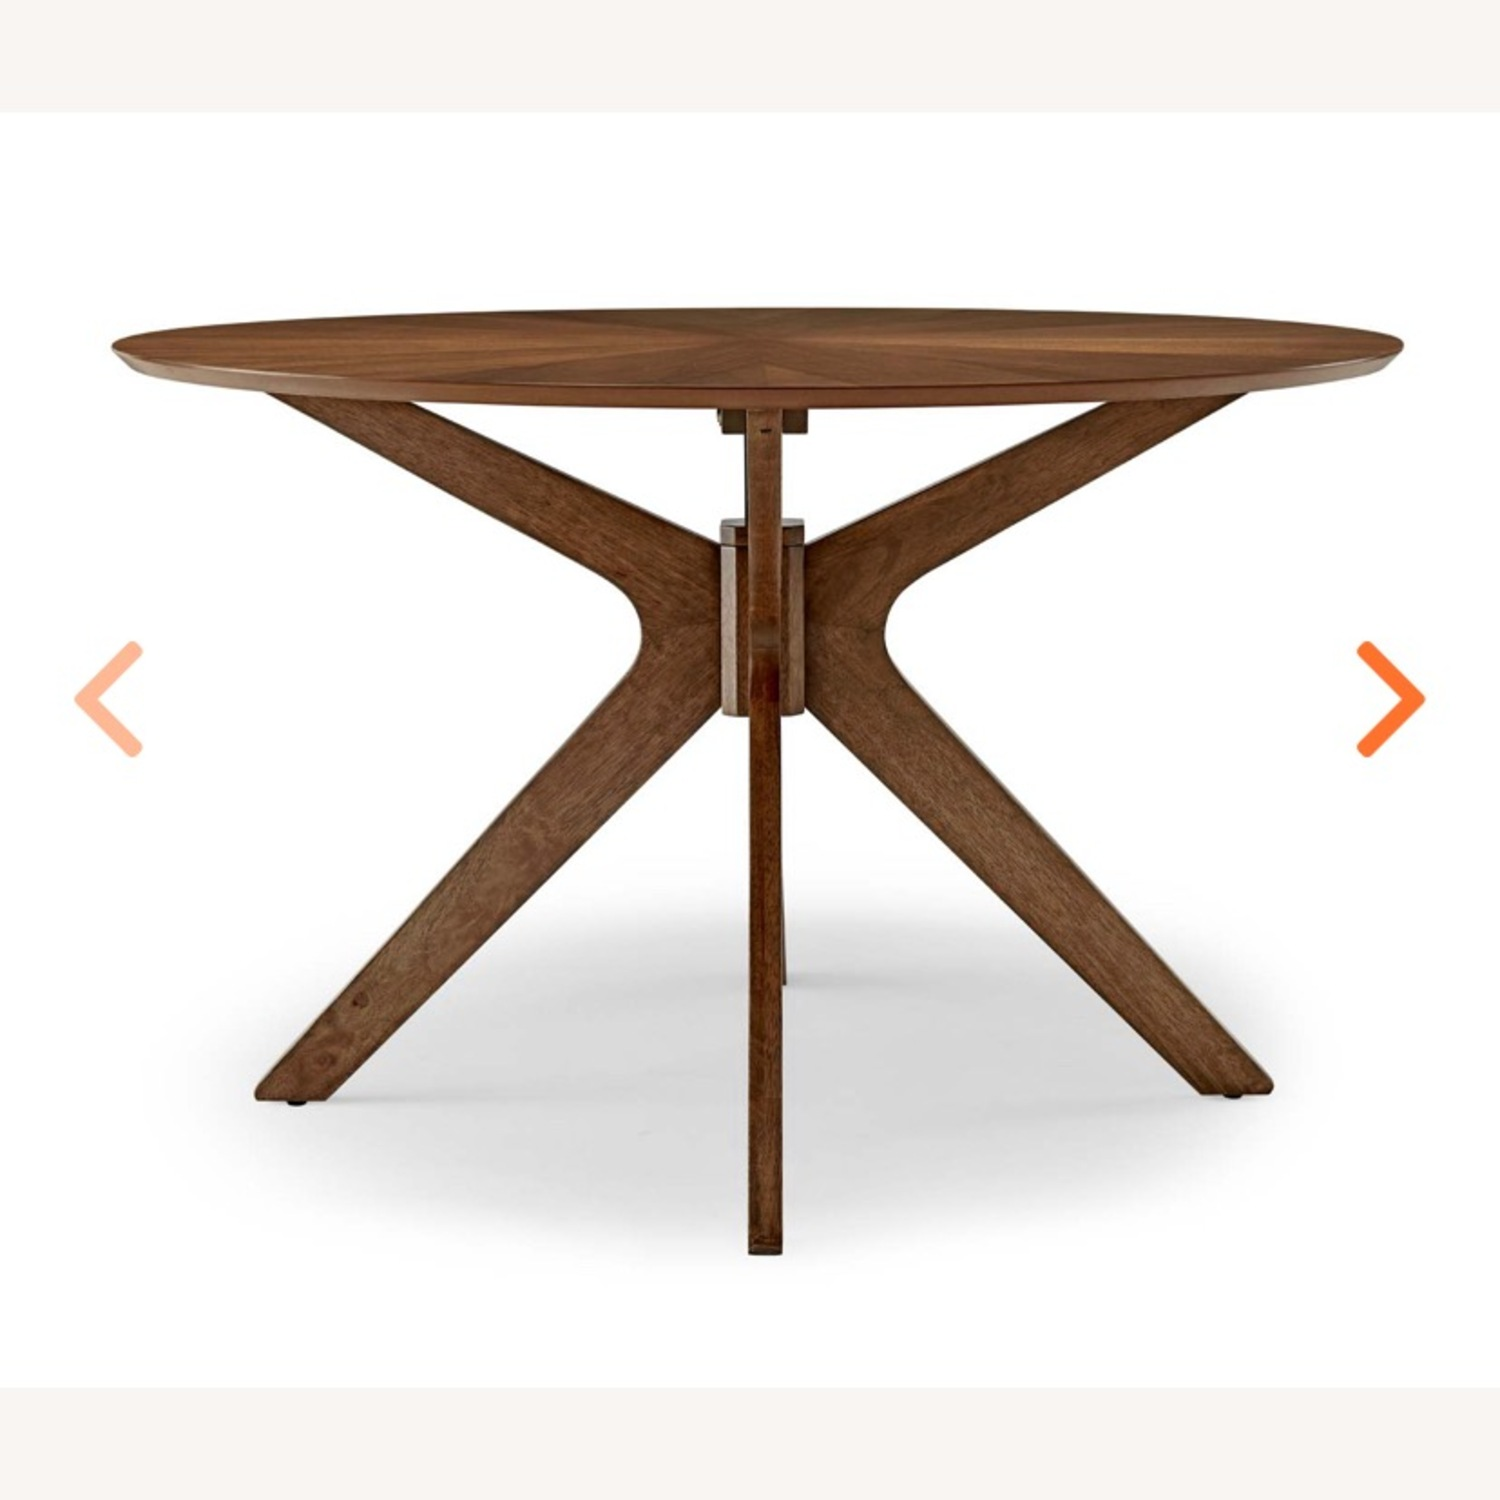 Modway Pedestal 47 Dining Table in Walnut - image-2